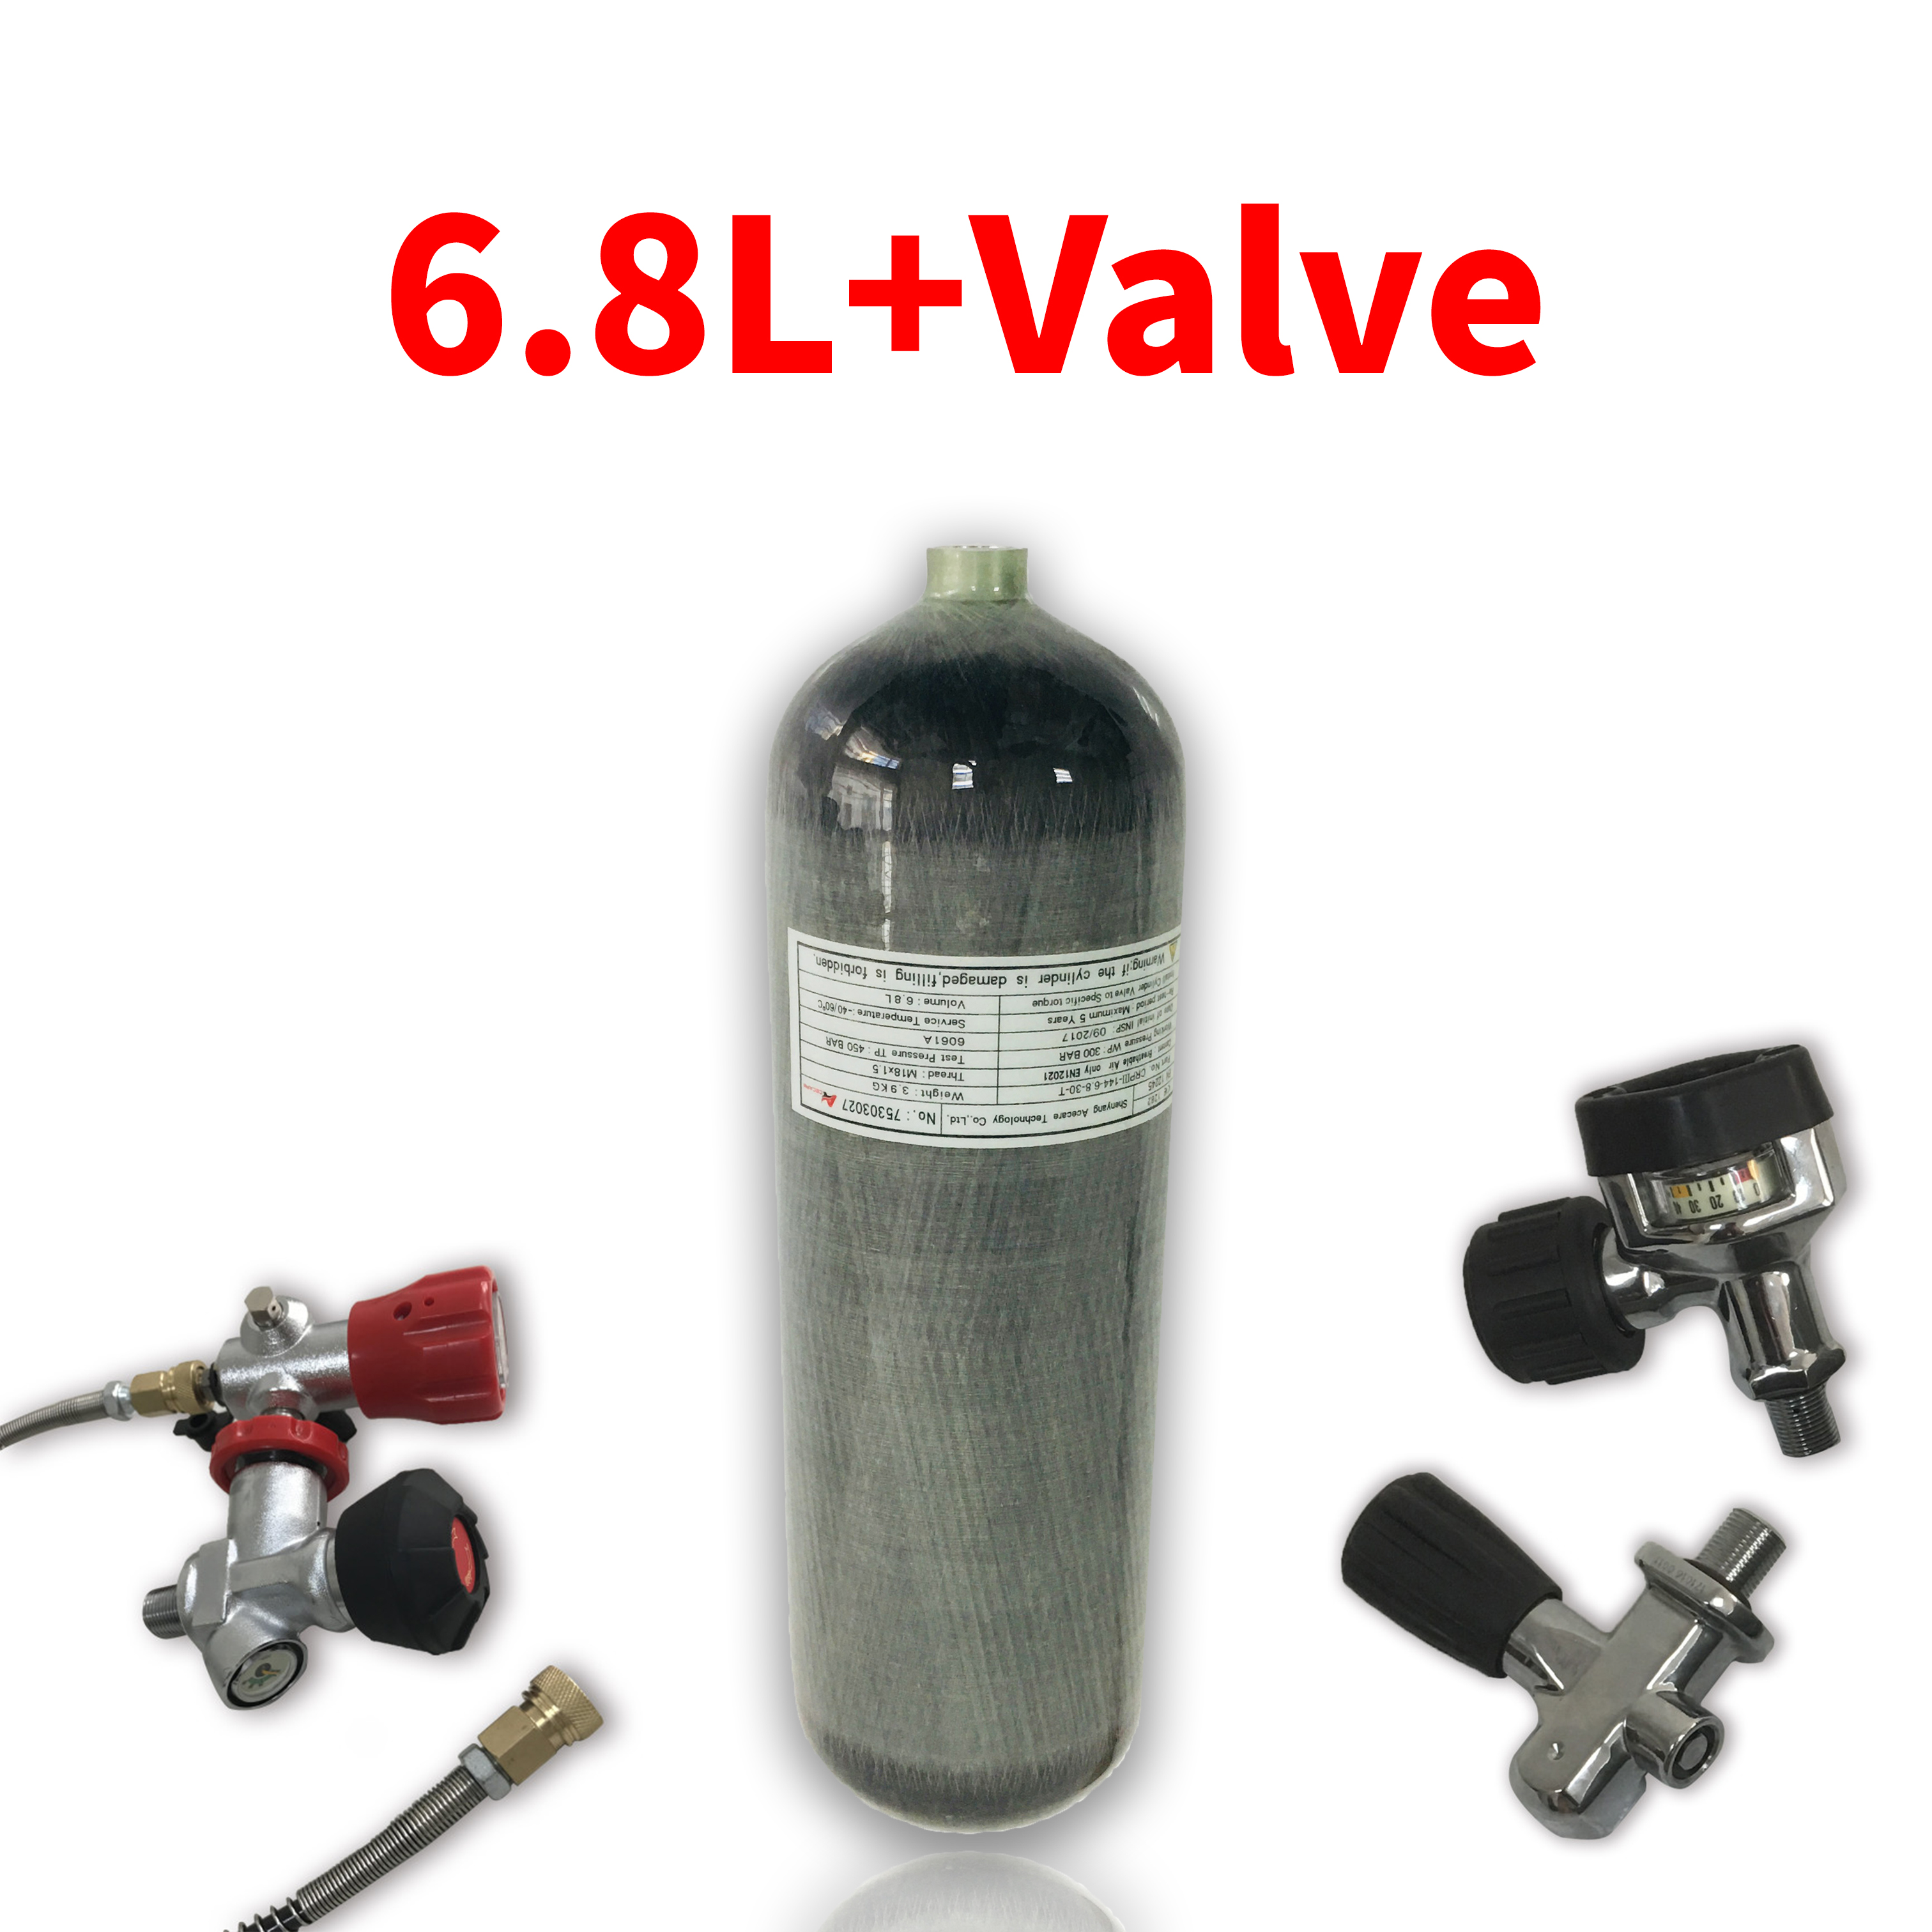 AC168 Acecare 6.8L CE PCP Carbon Fiber Cylinder For Diving HPA Compressed Air Tank/Airforce Condor/Air Rifle/Airgun For Hunting